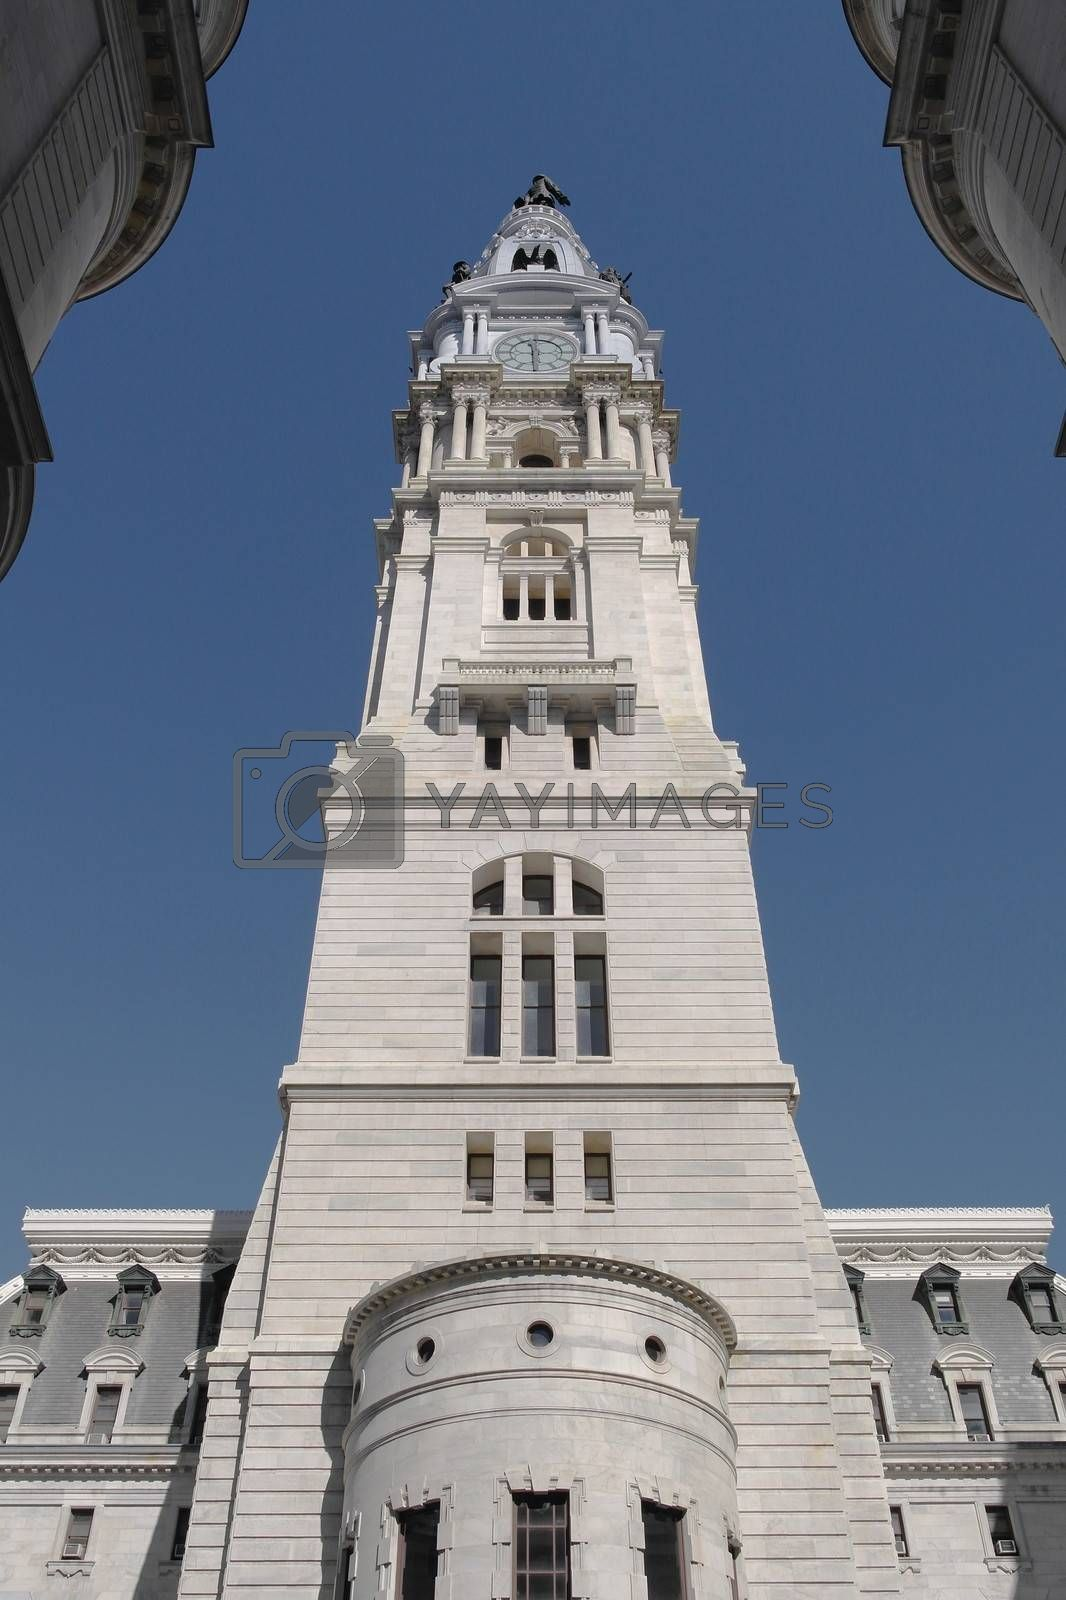 City hall in Downtown Philadelpia